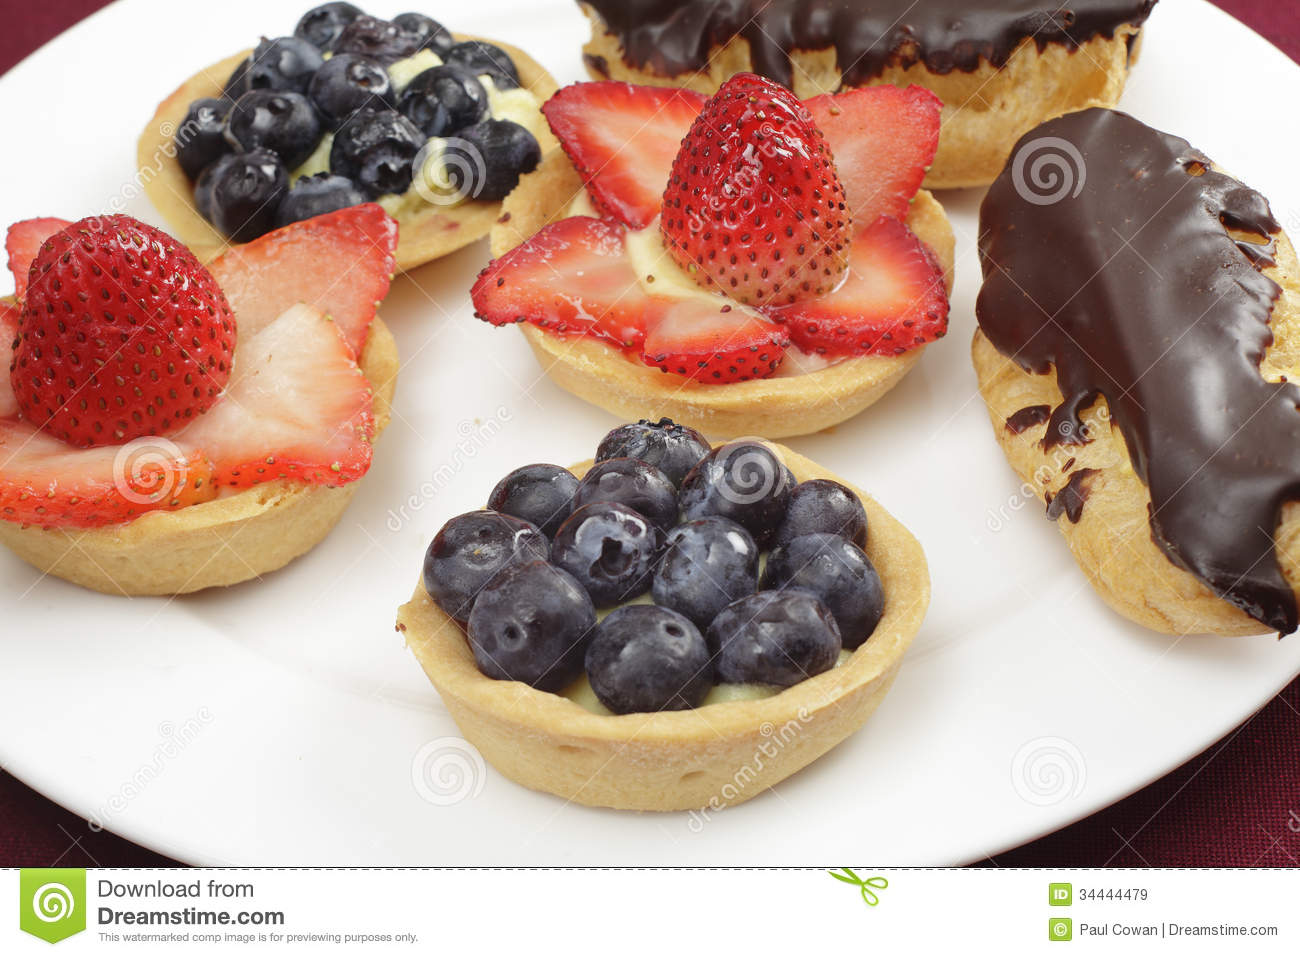 ... topped with fresh strawberries or blueberries, and chocolate eclairs